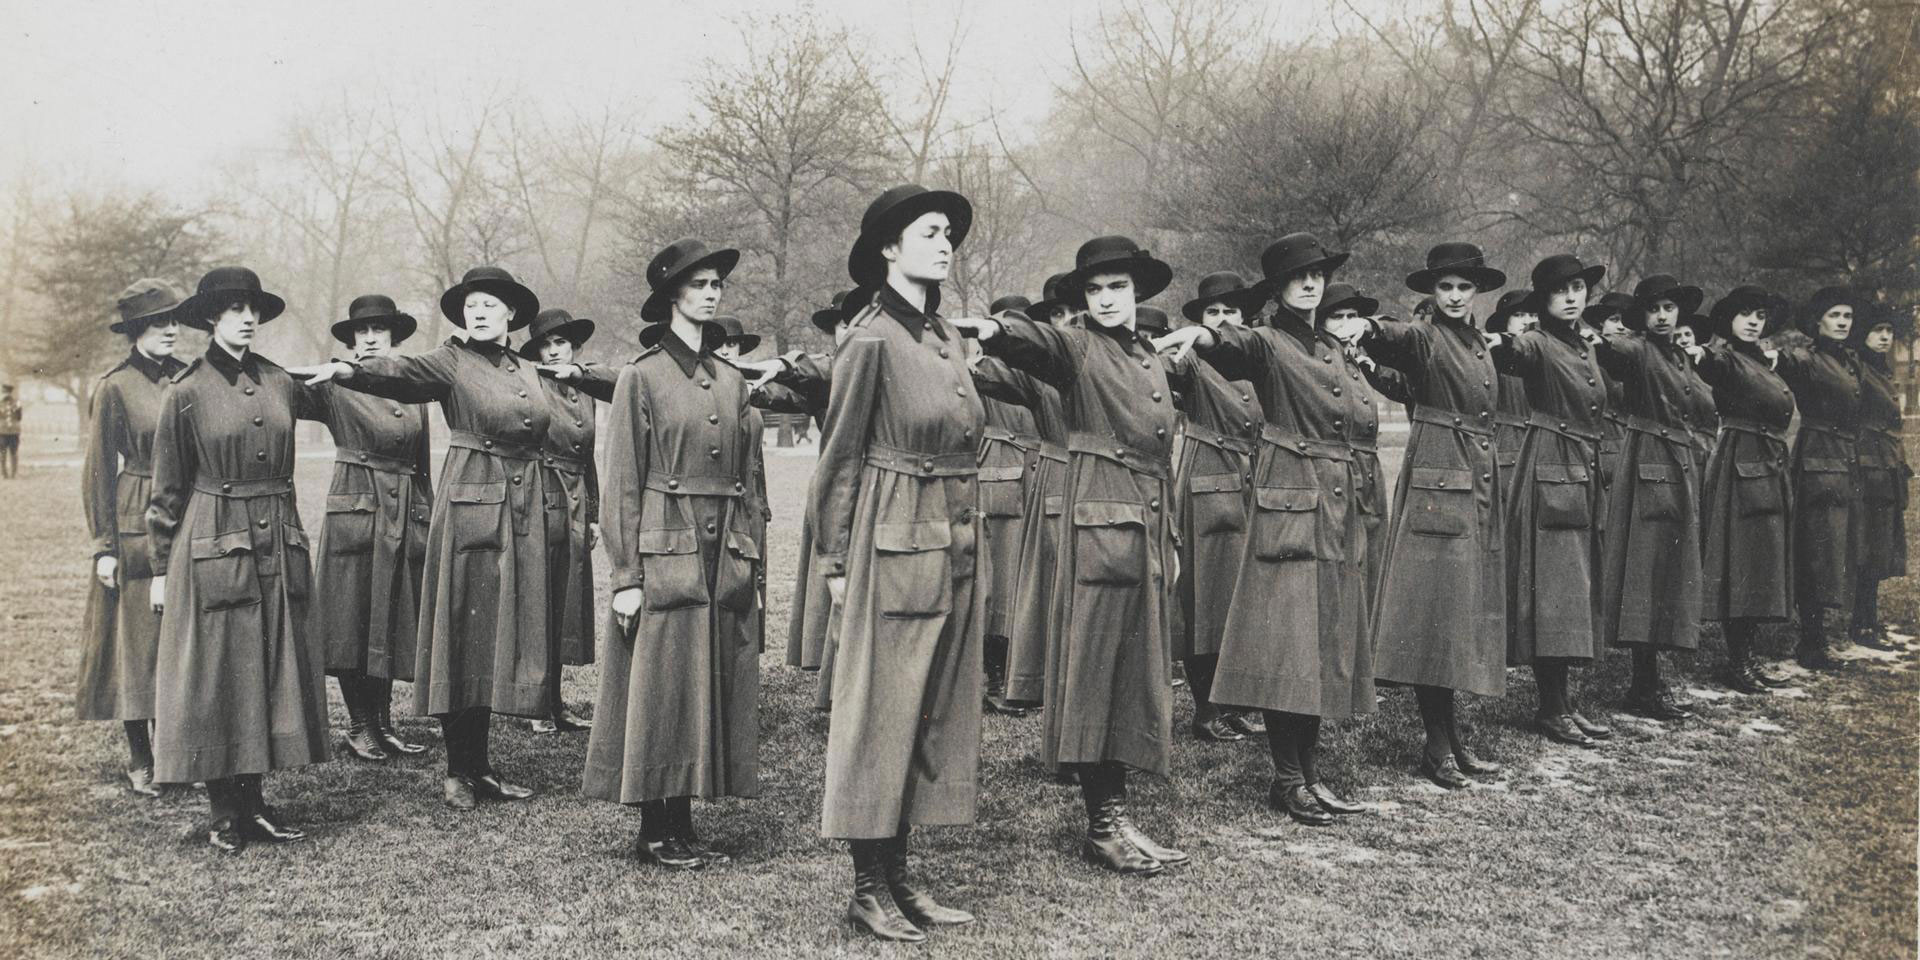 Women 100: Women and the Army